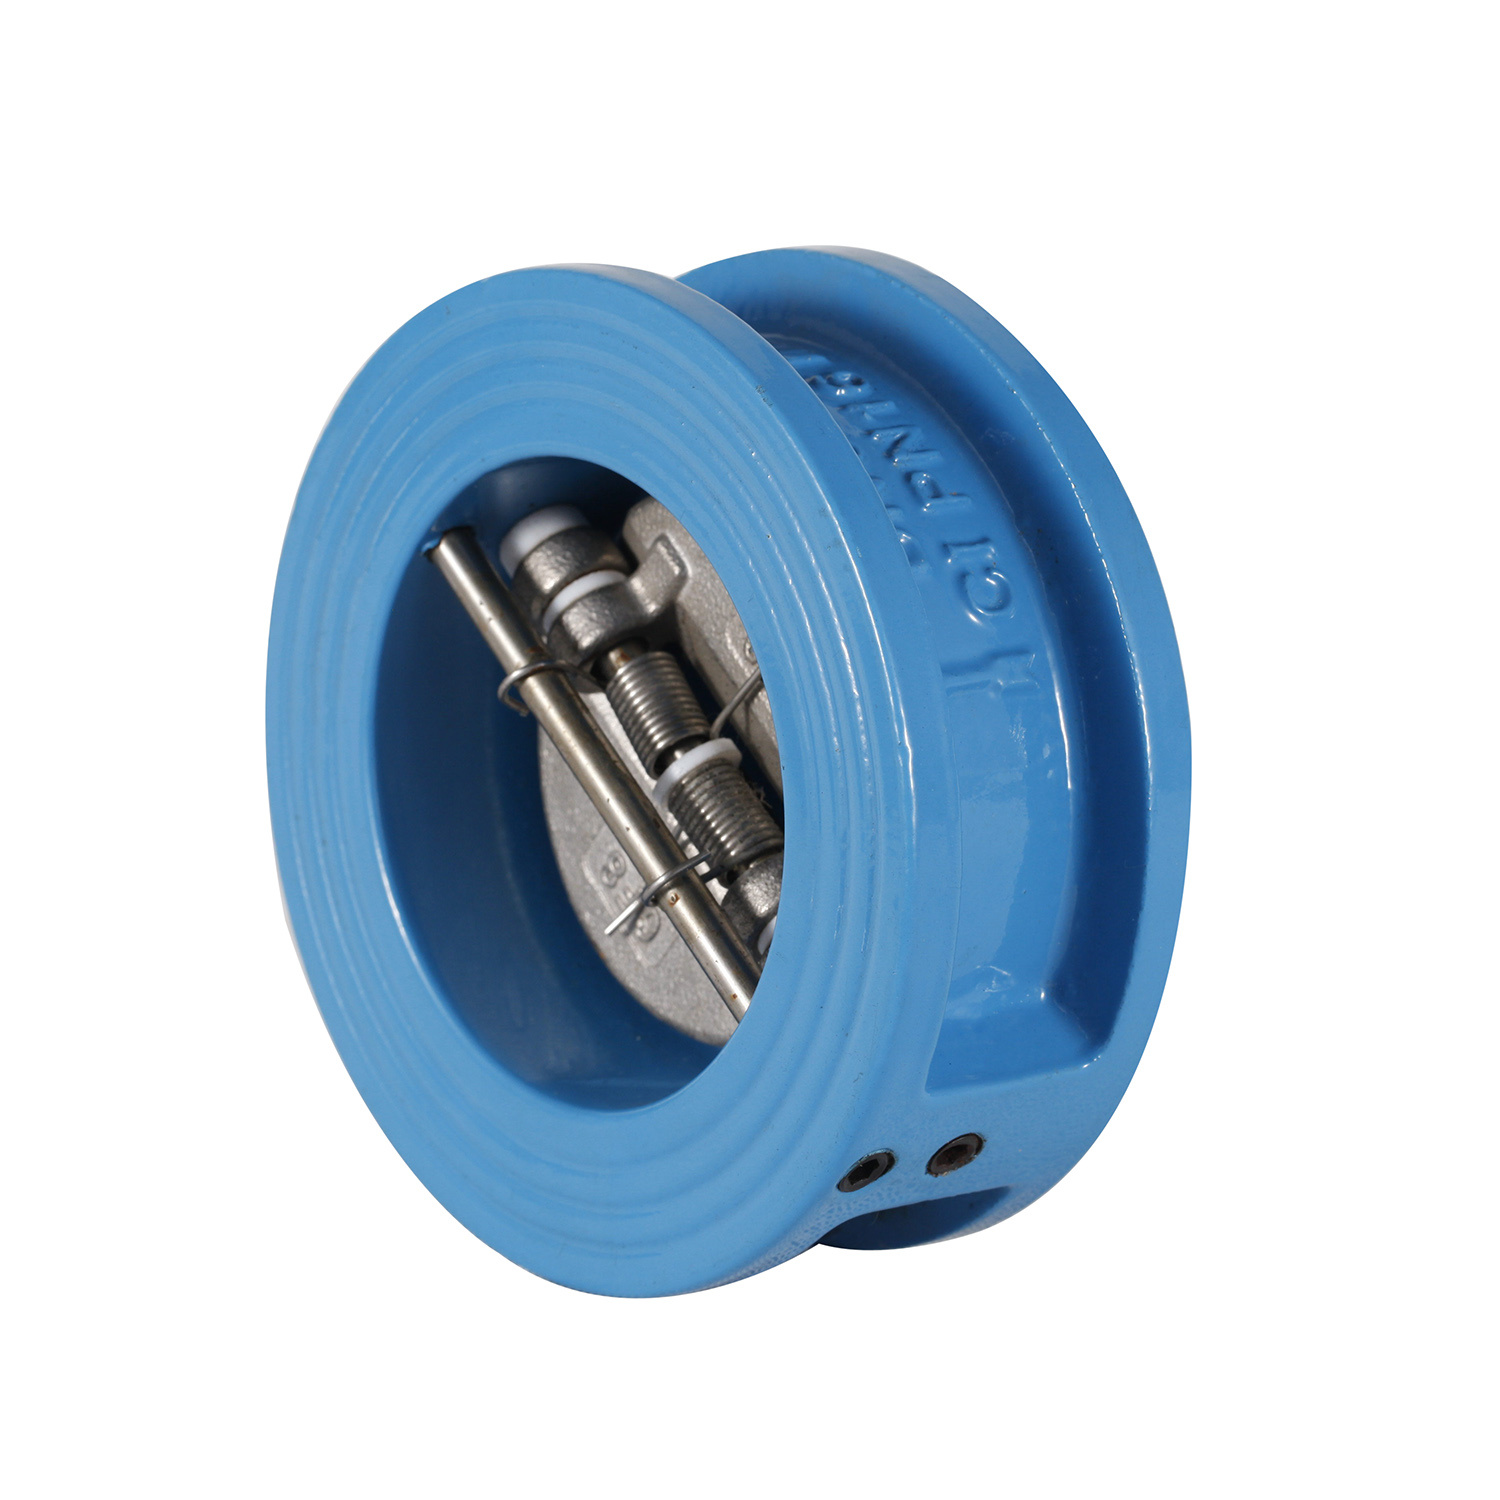 Dual plate double pump check valve